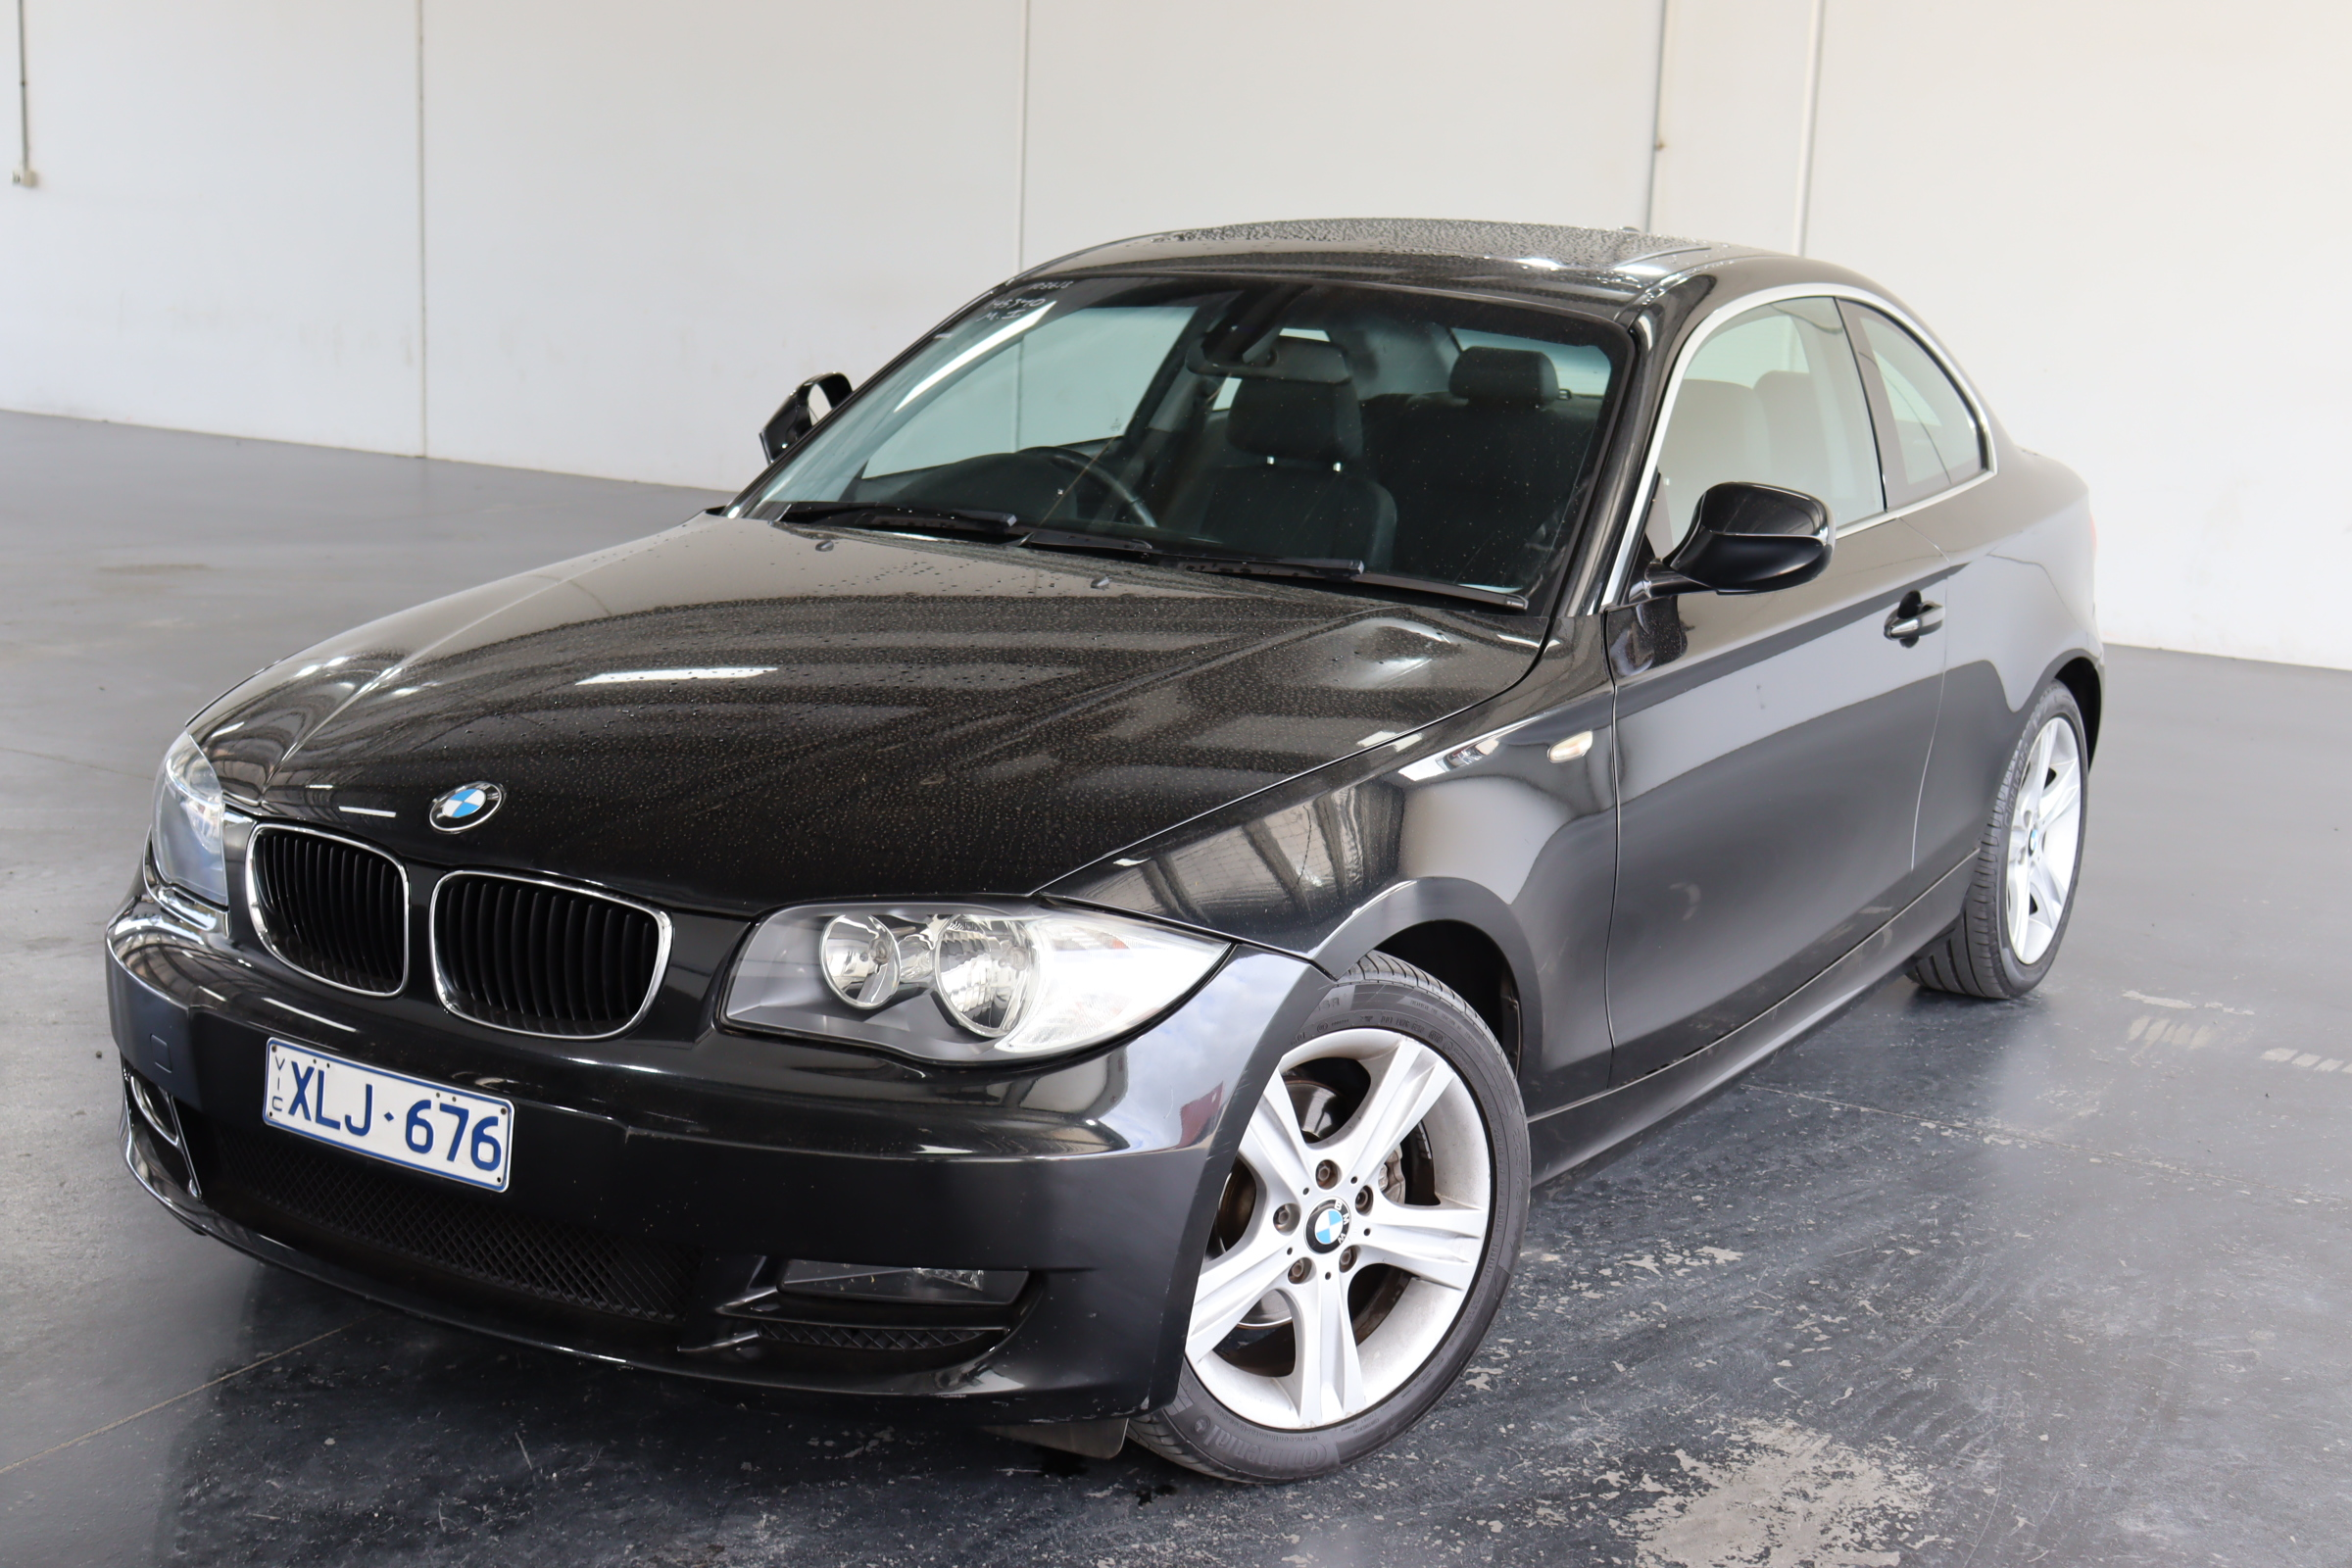 2010 BMW 1 25i E82 Automatic Coupe